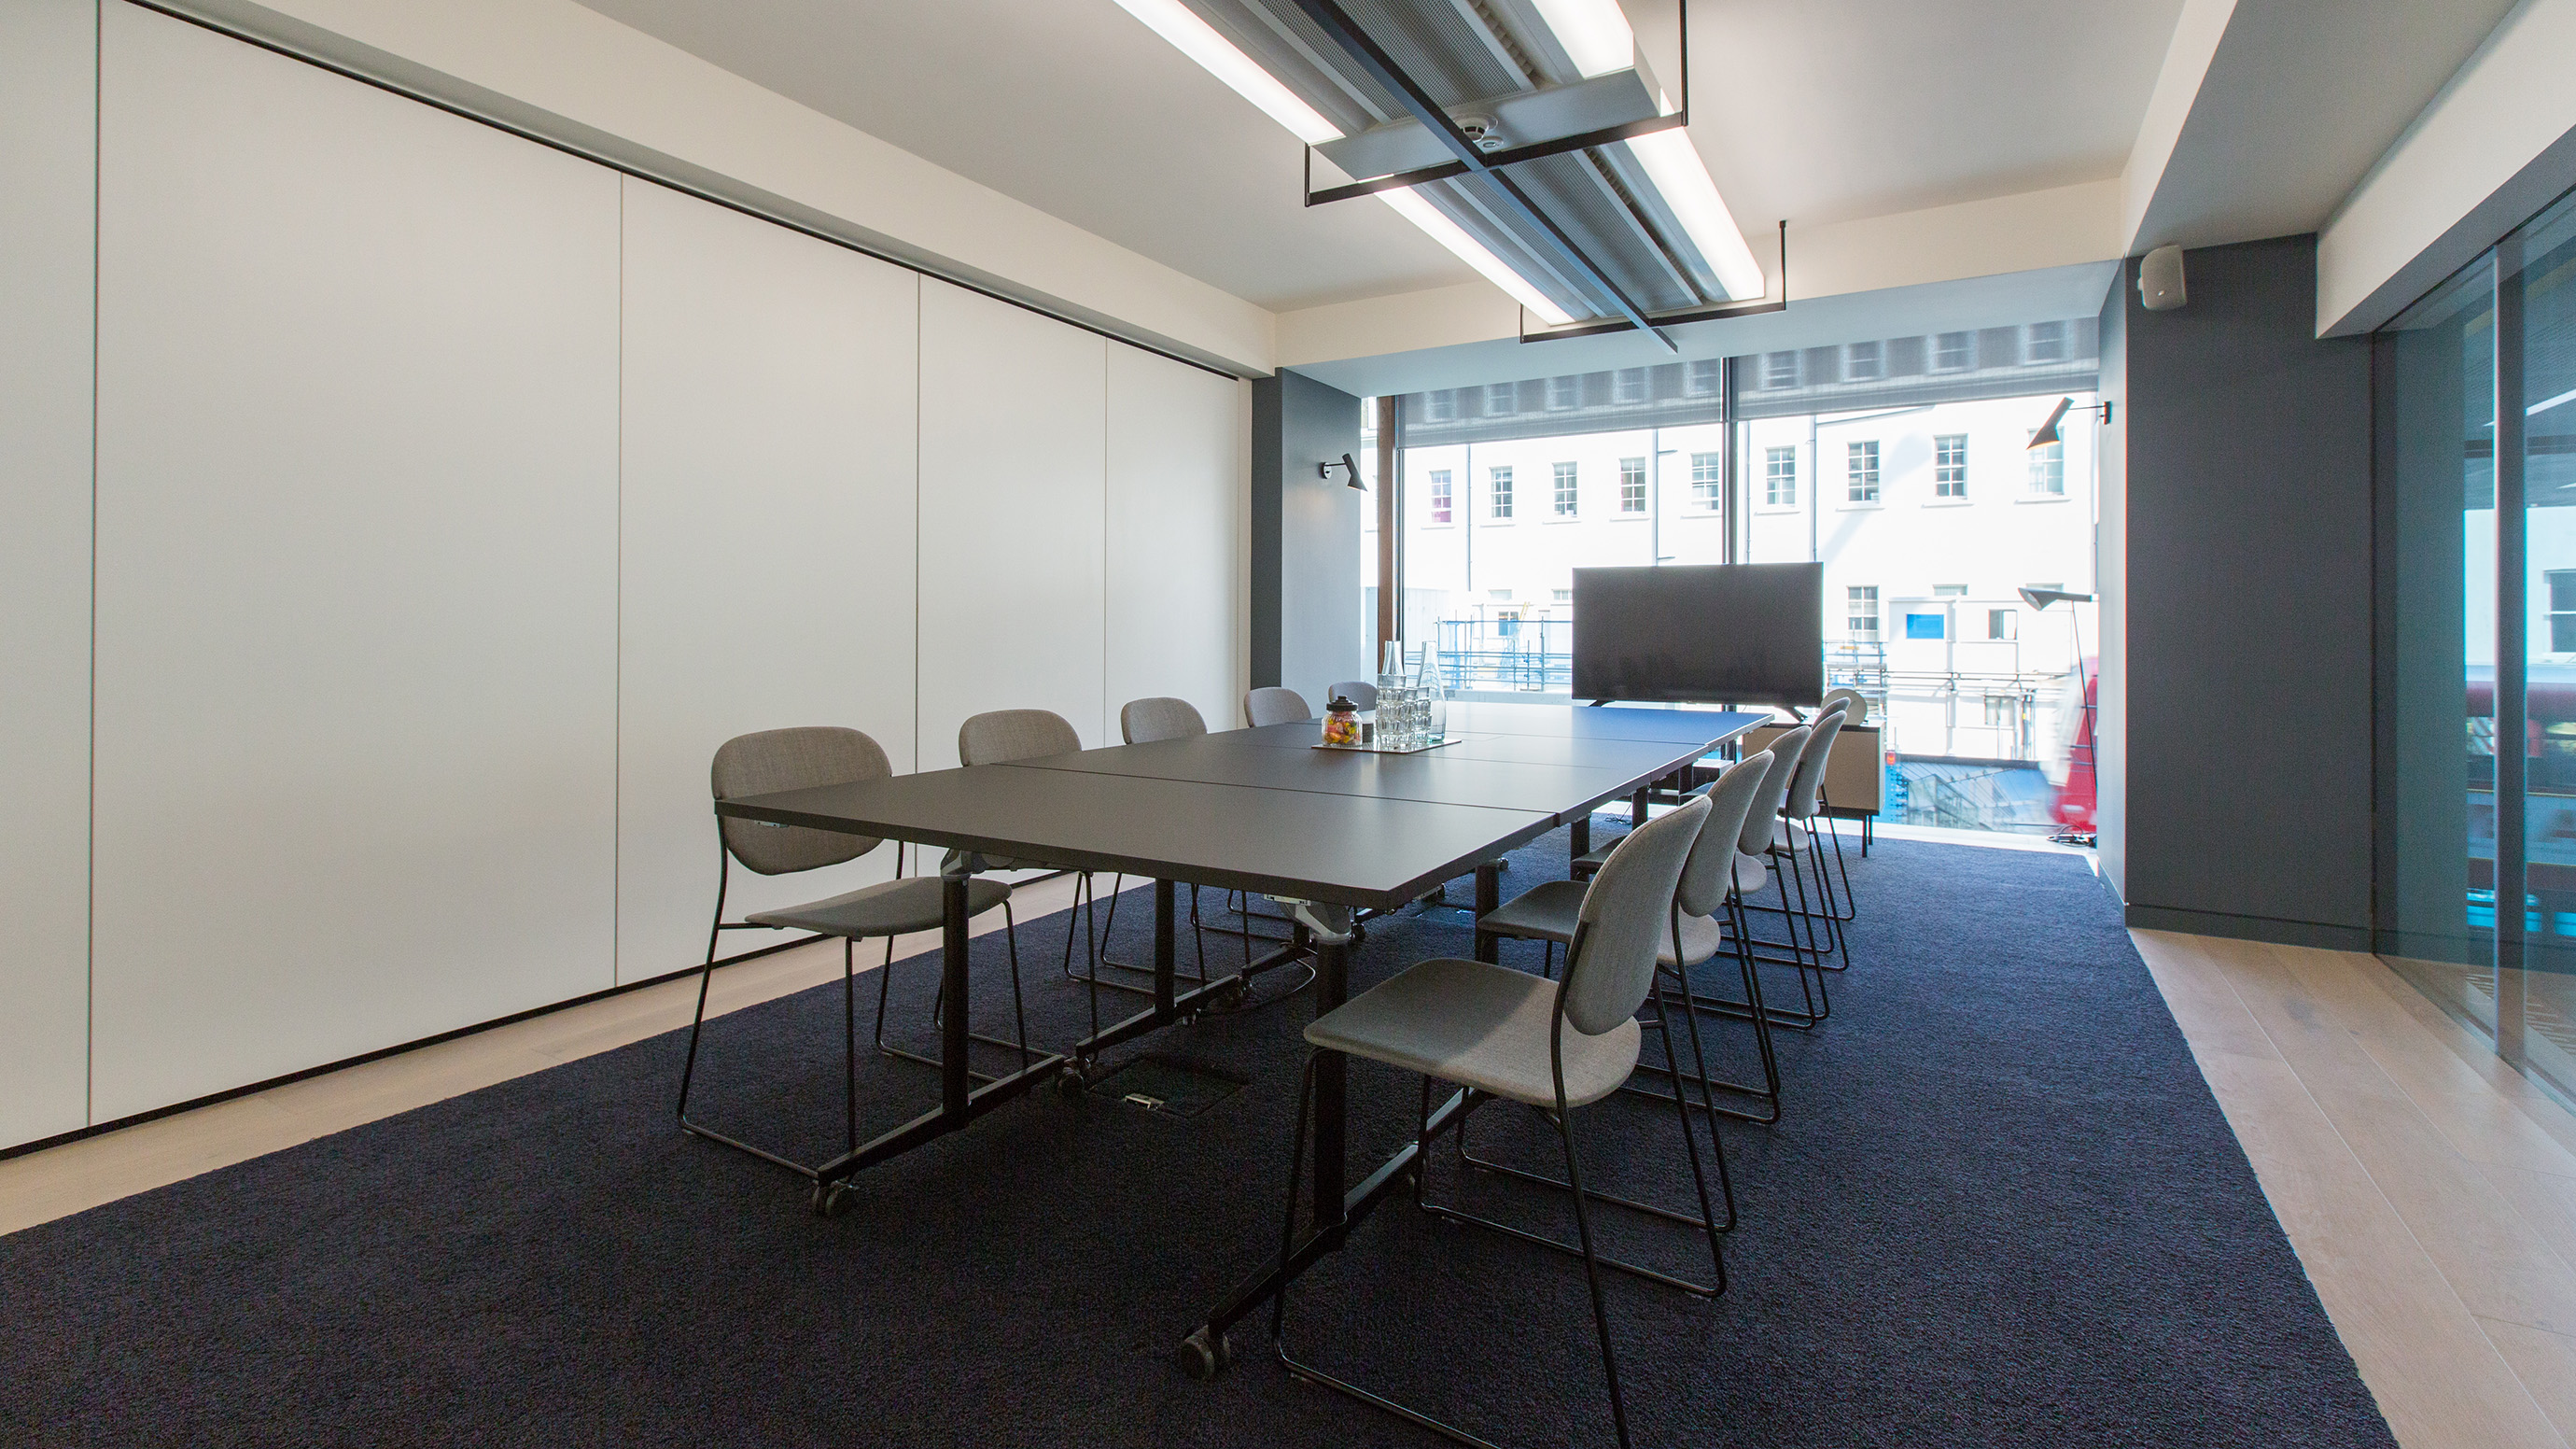 Medium meeting room with black table and grey chairs at TOG building 20 Eastbourne Terrace London